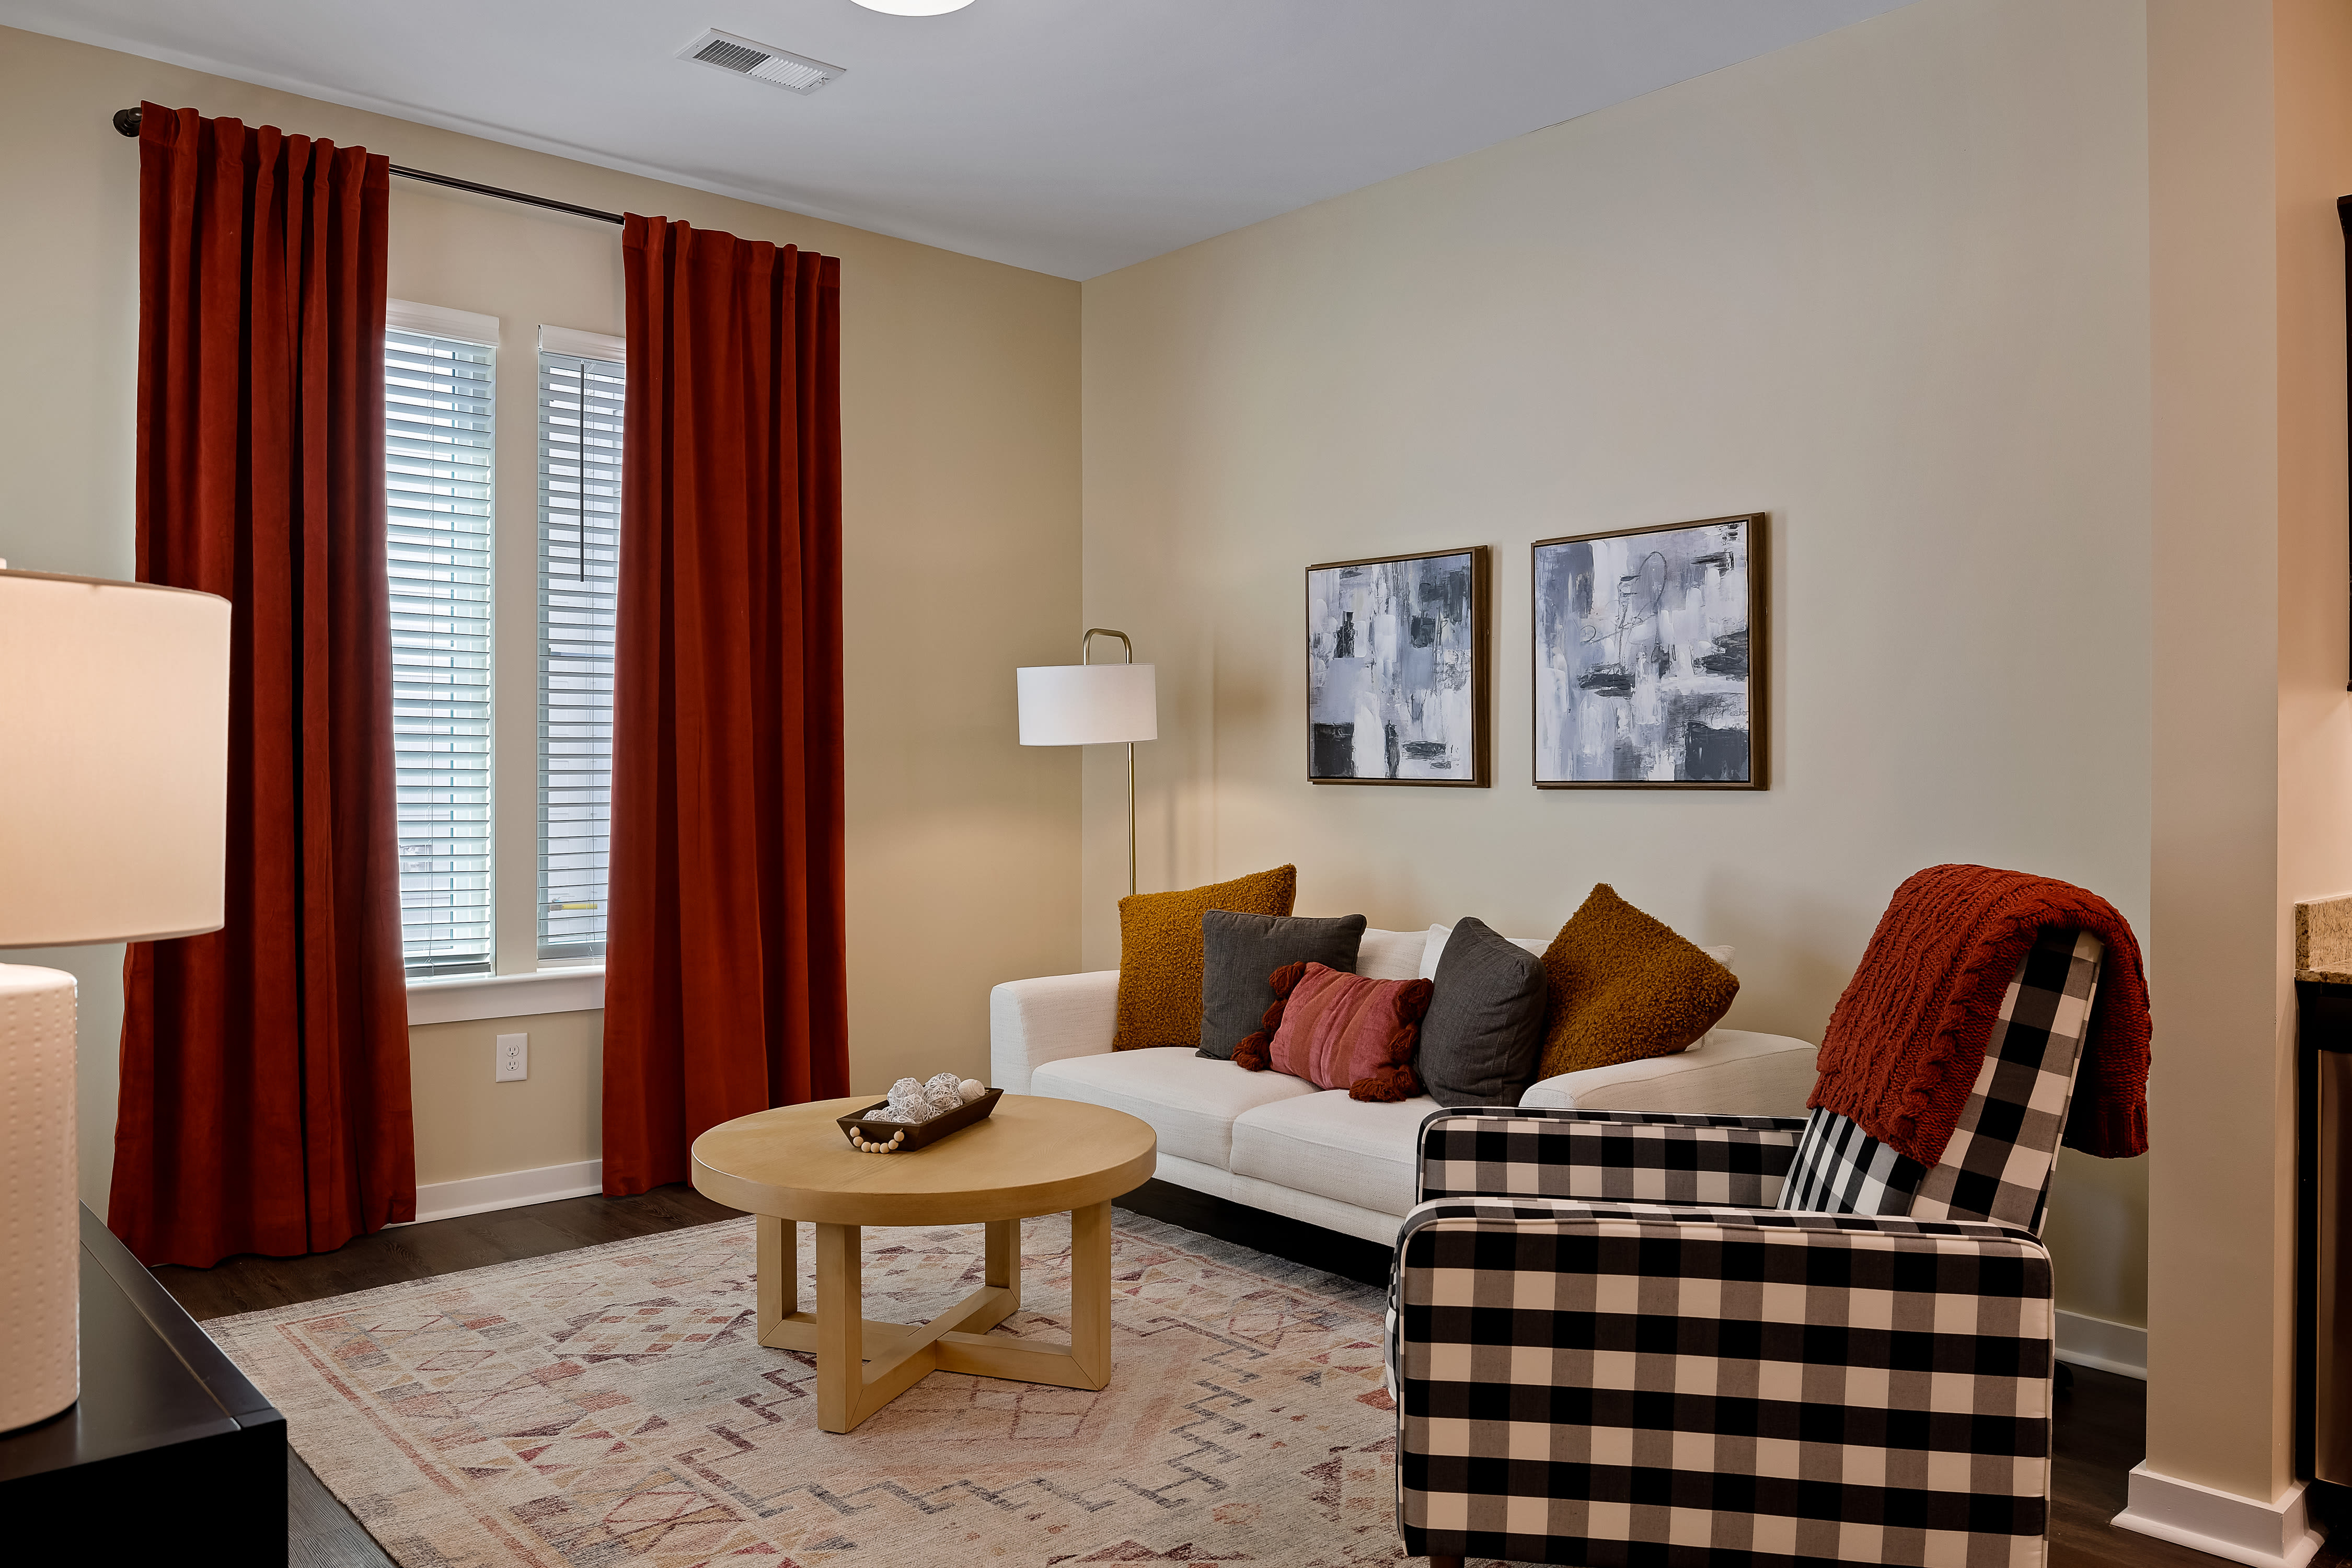 Cozy living room with a window view at The Claiborne at Newnan Lakes in Newnan, GA